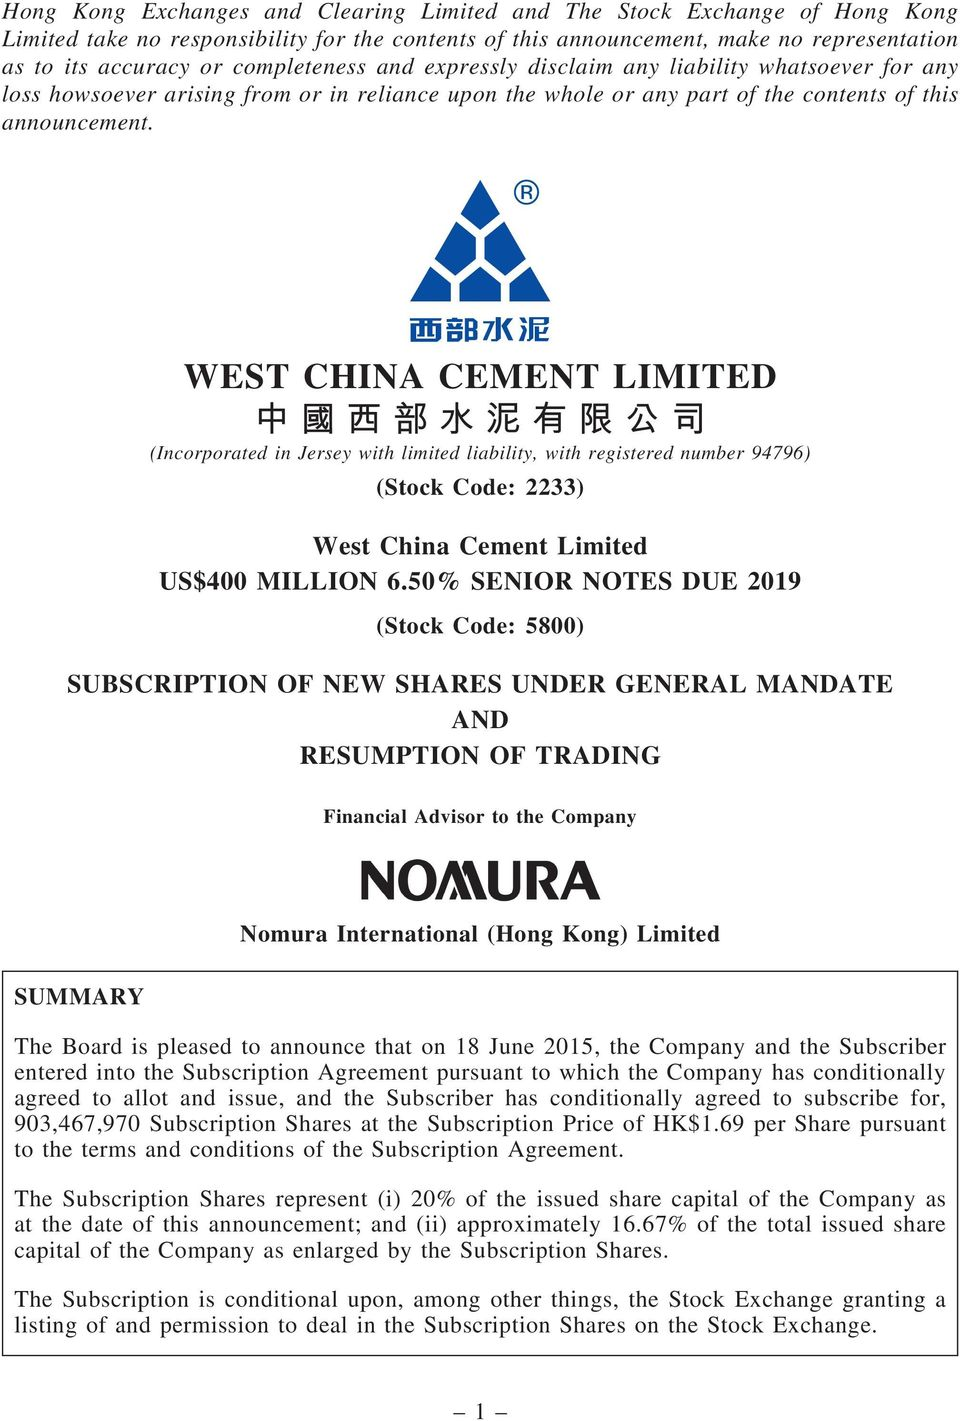 WEST CHINA CEMENT LIMITED 中 國 西 部 水 泥 有 限 公 司 (Incorporated in Jersey with limited liability, with registered number 94796) (Stock Code: 2233) West China Cement Limited US$400 MILLION 6.